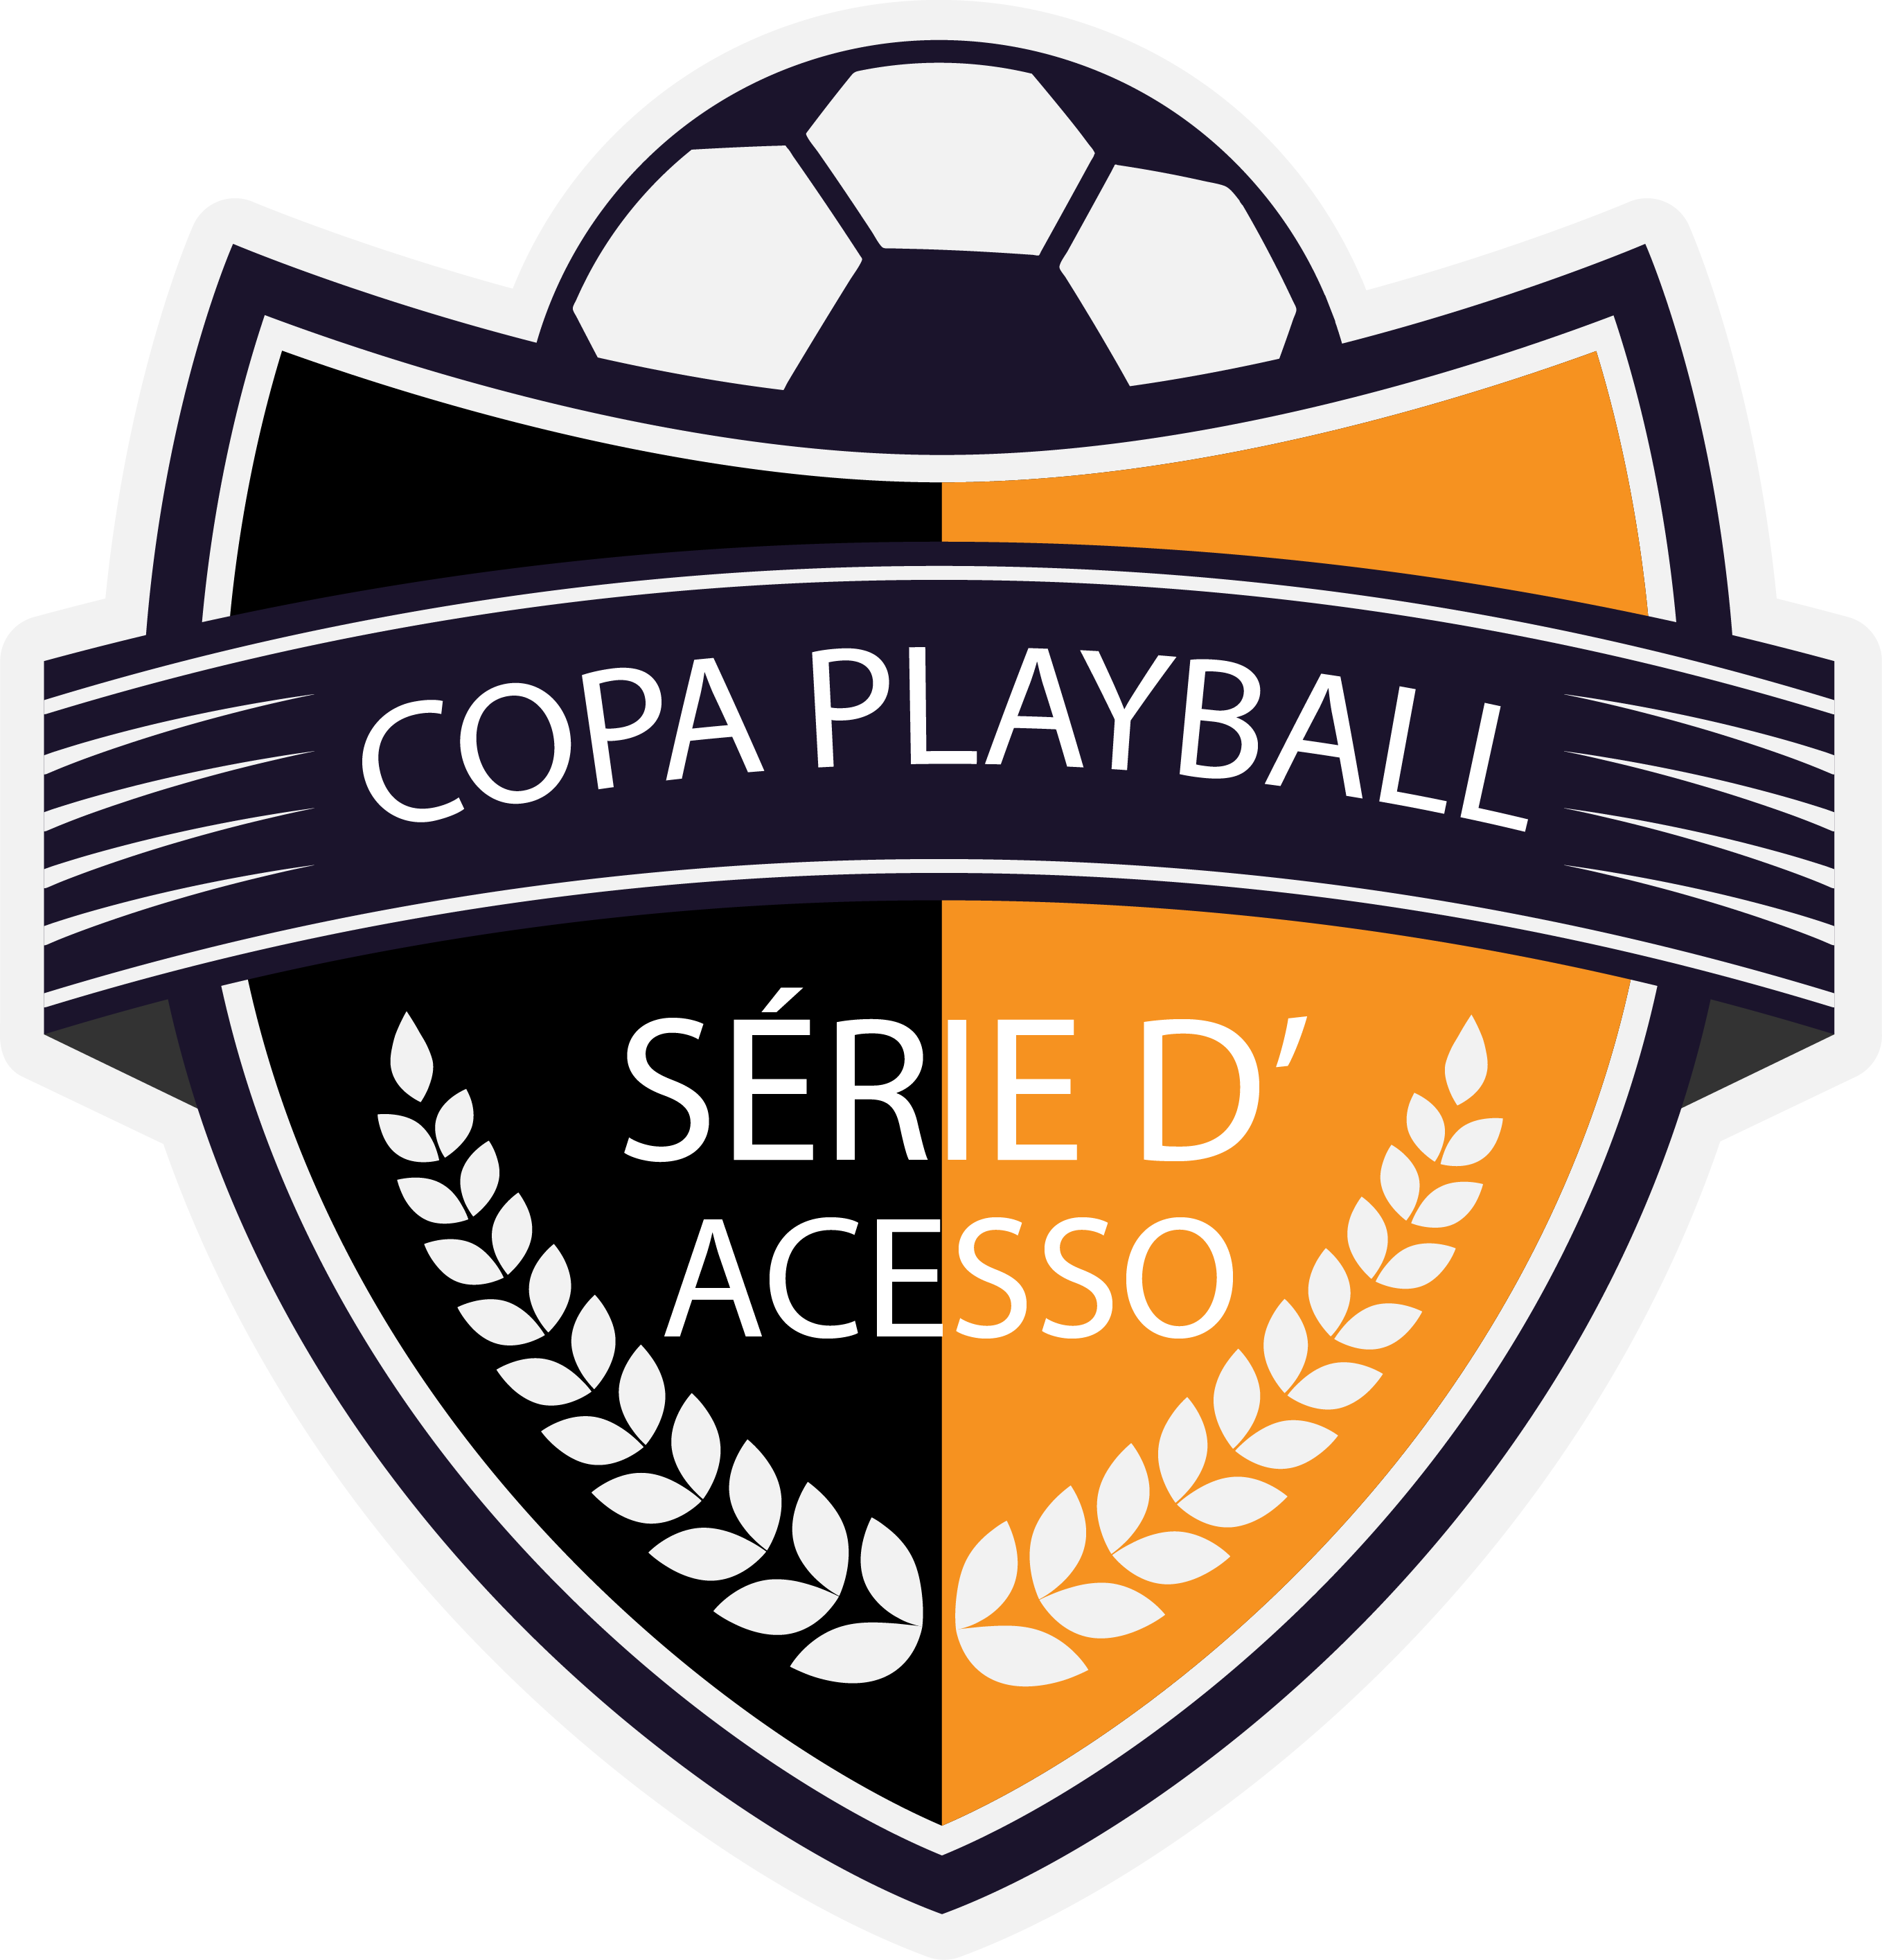 XI Copa Playball Serie D Acesso